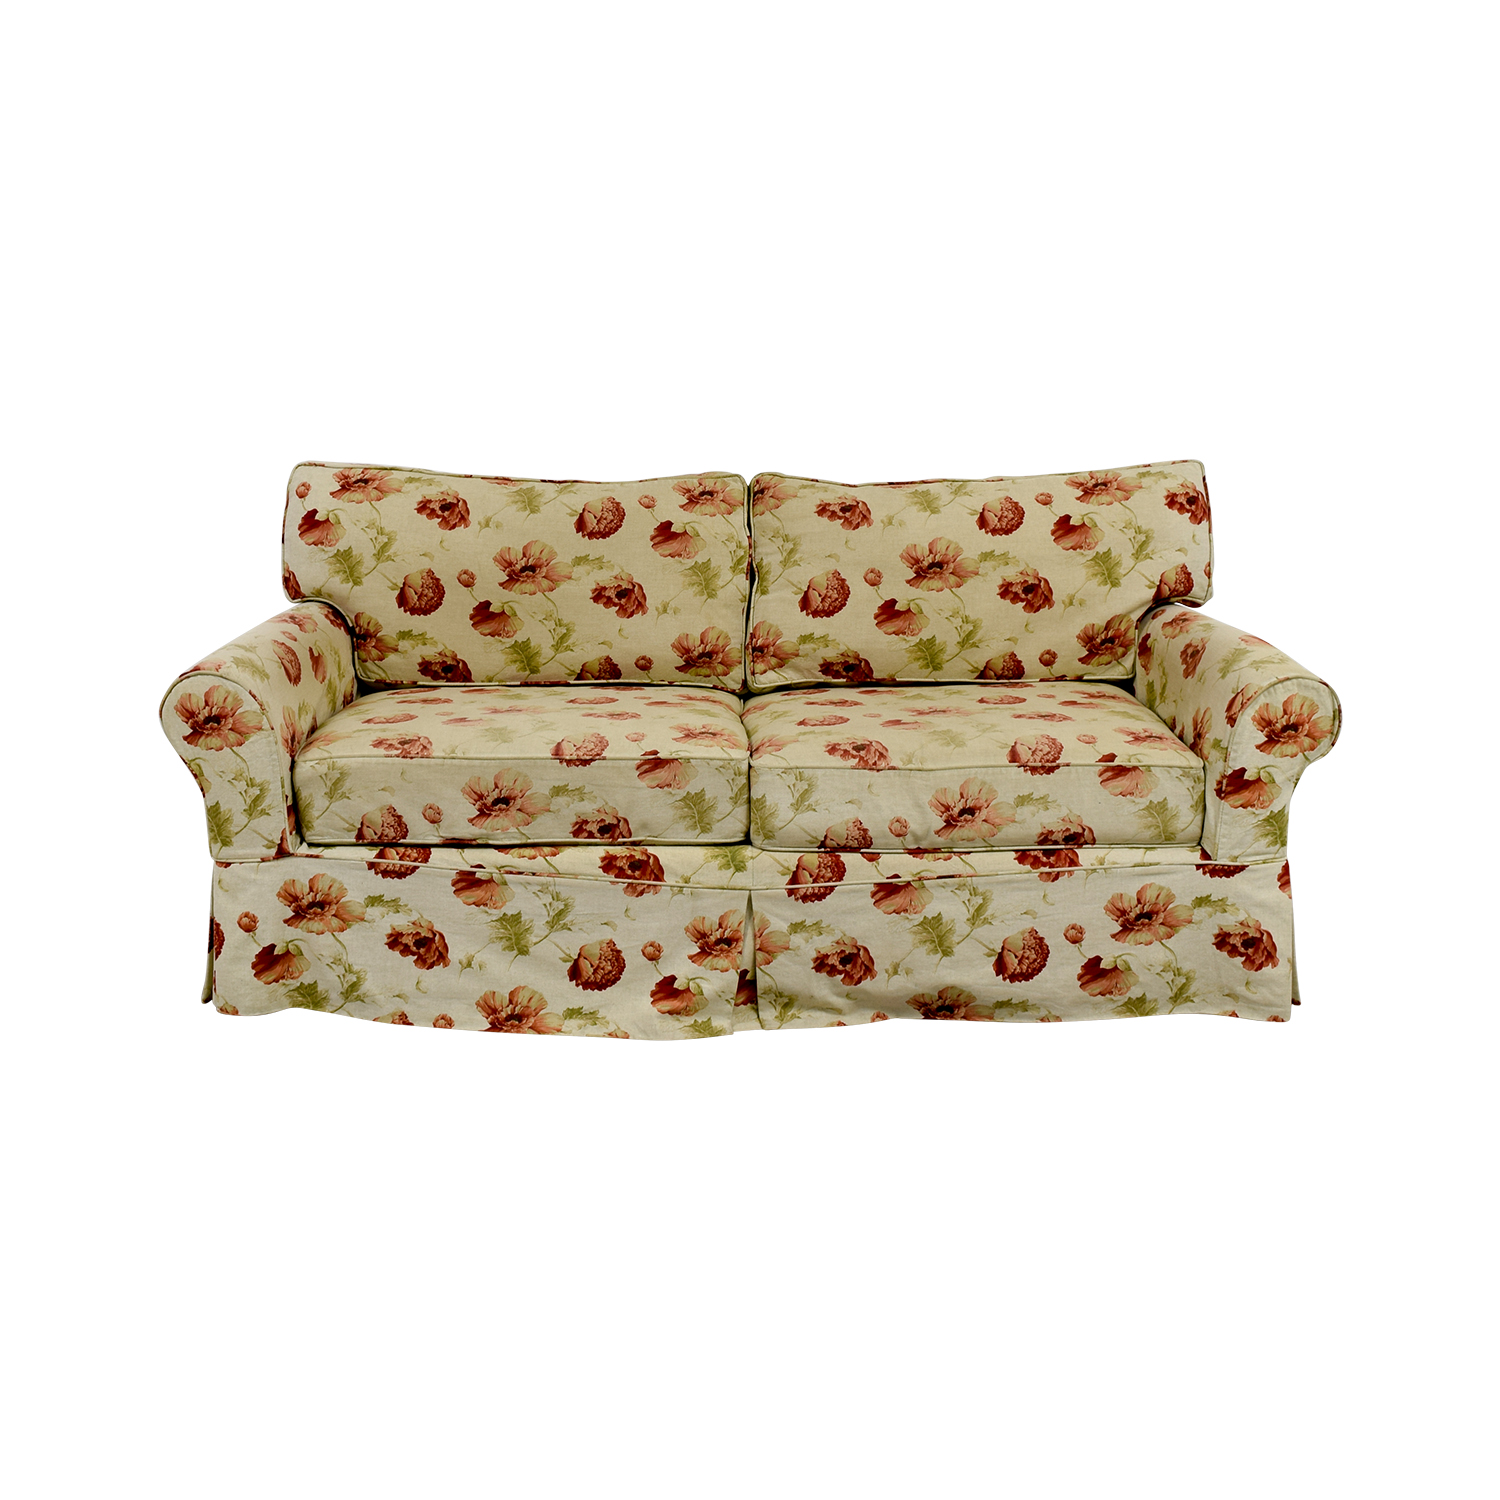 floral vintage couch products img dwelling barefoot draft sofa